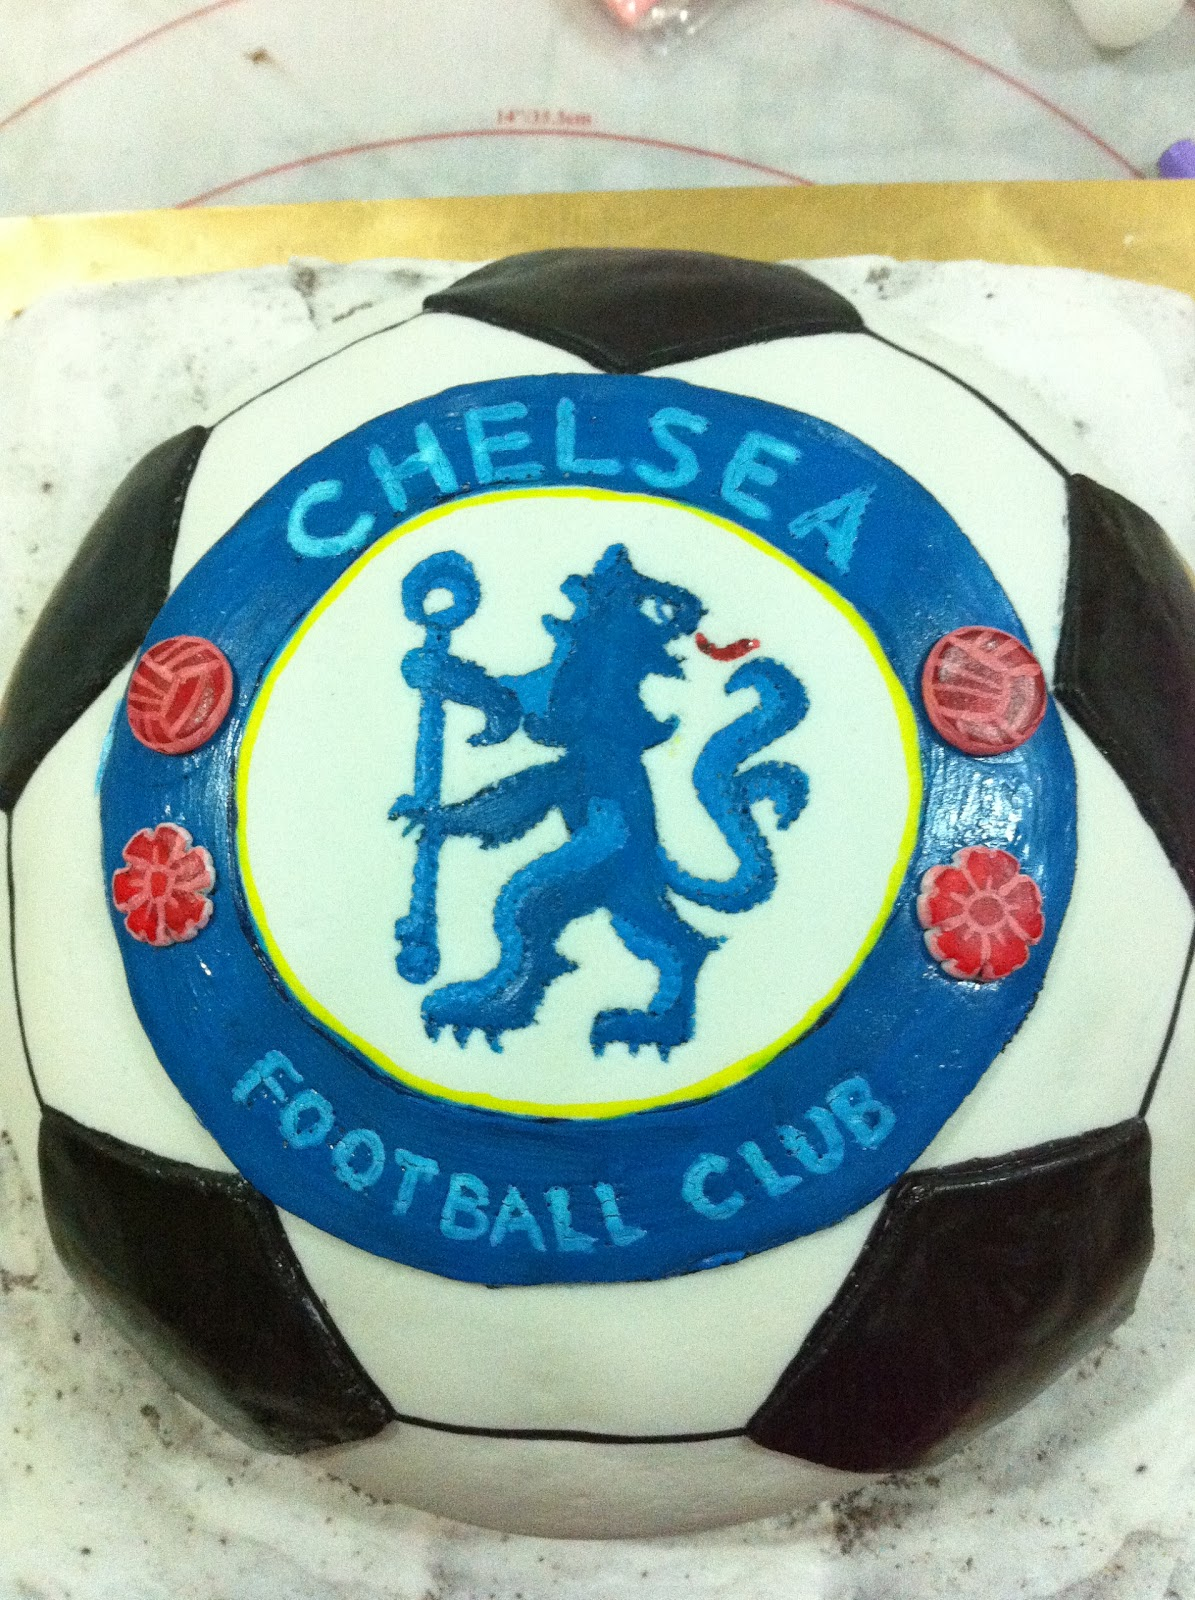 Home May De Cakes The Making Of Chelsea Soccer Cake